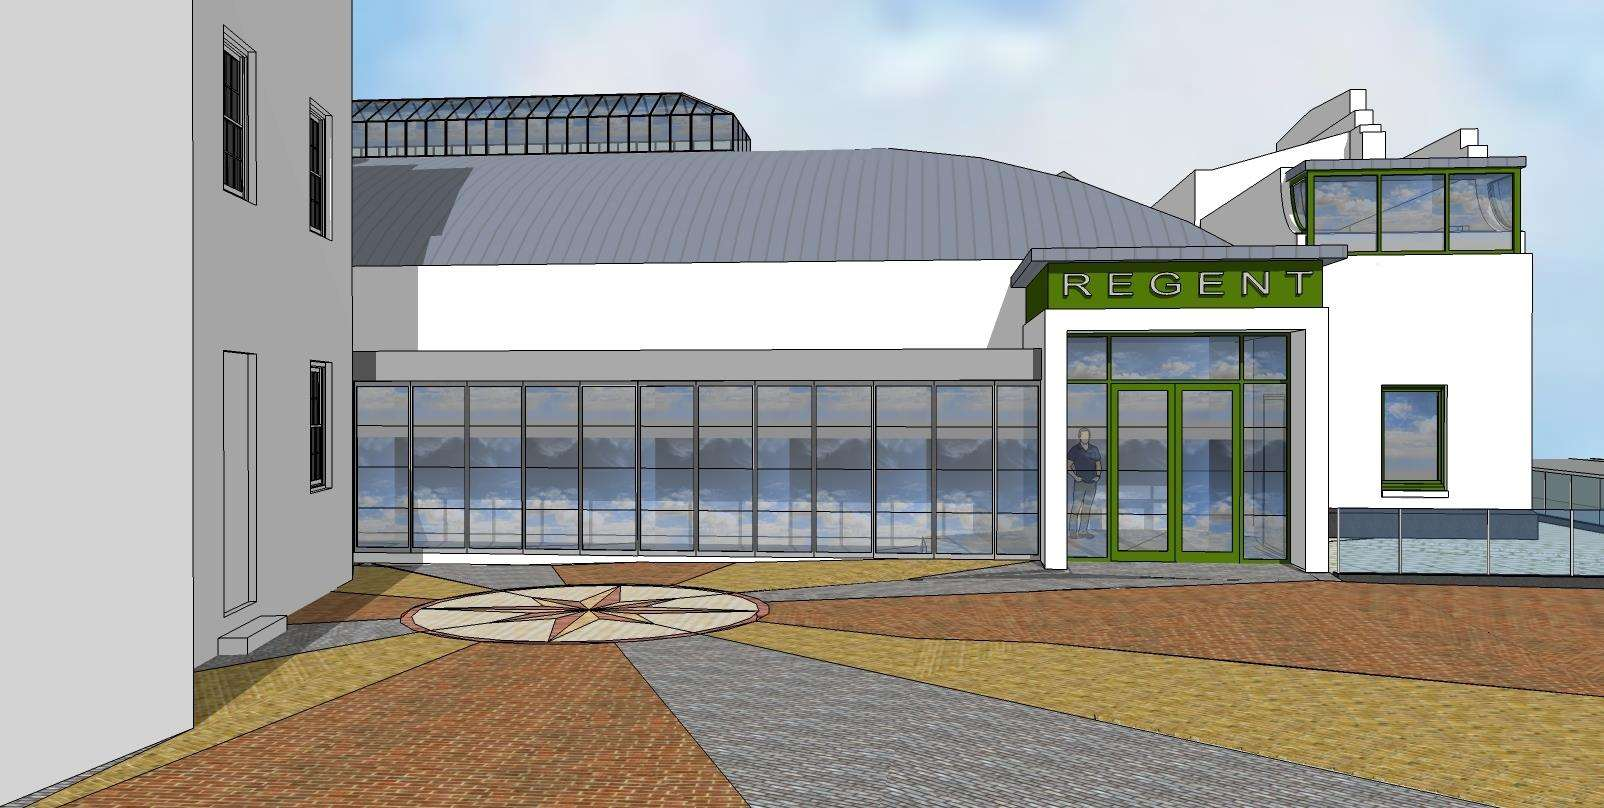 Deal Town Council is supporting the latest plans for a cinema in the town